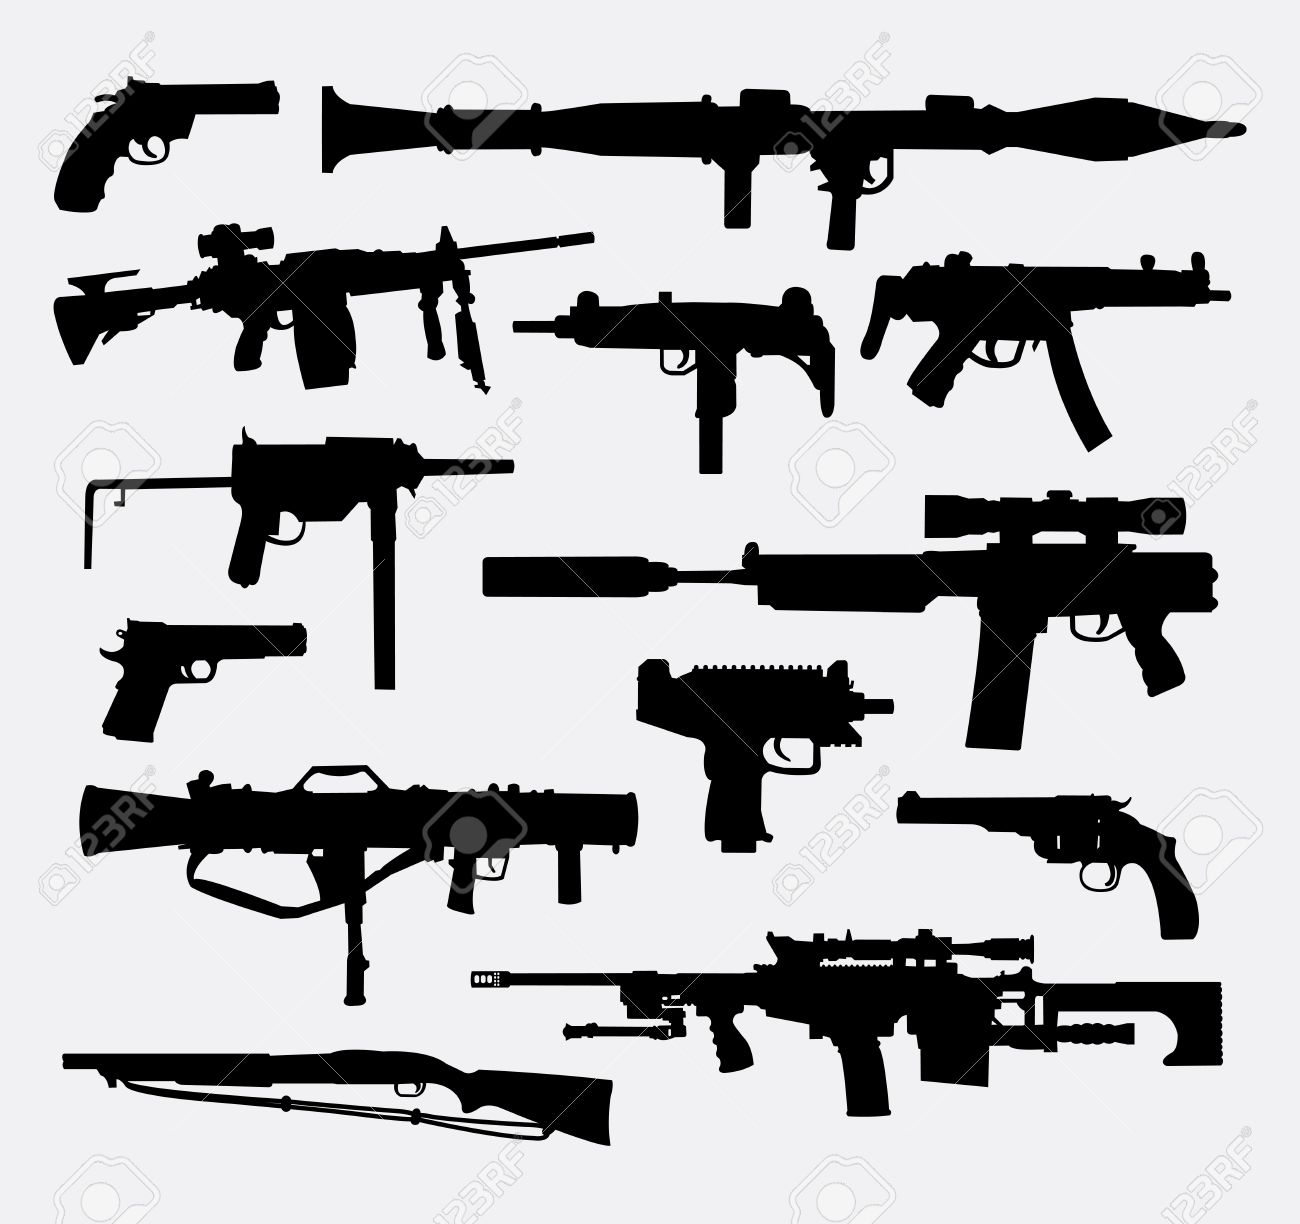 Gun weapon silhouettes good use for symbol web icon logo gun weapon silhouettes good use for symbol web icon logo mascot biocorpaavc Images